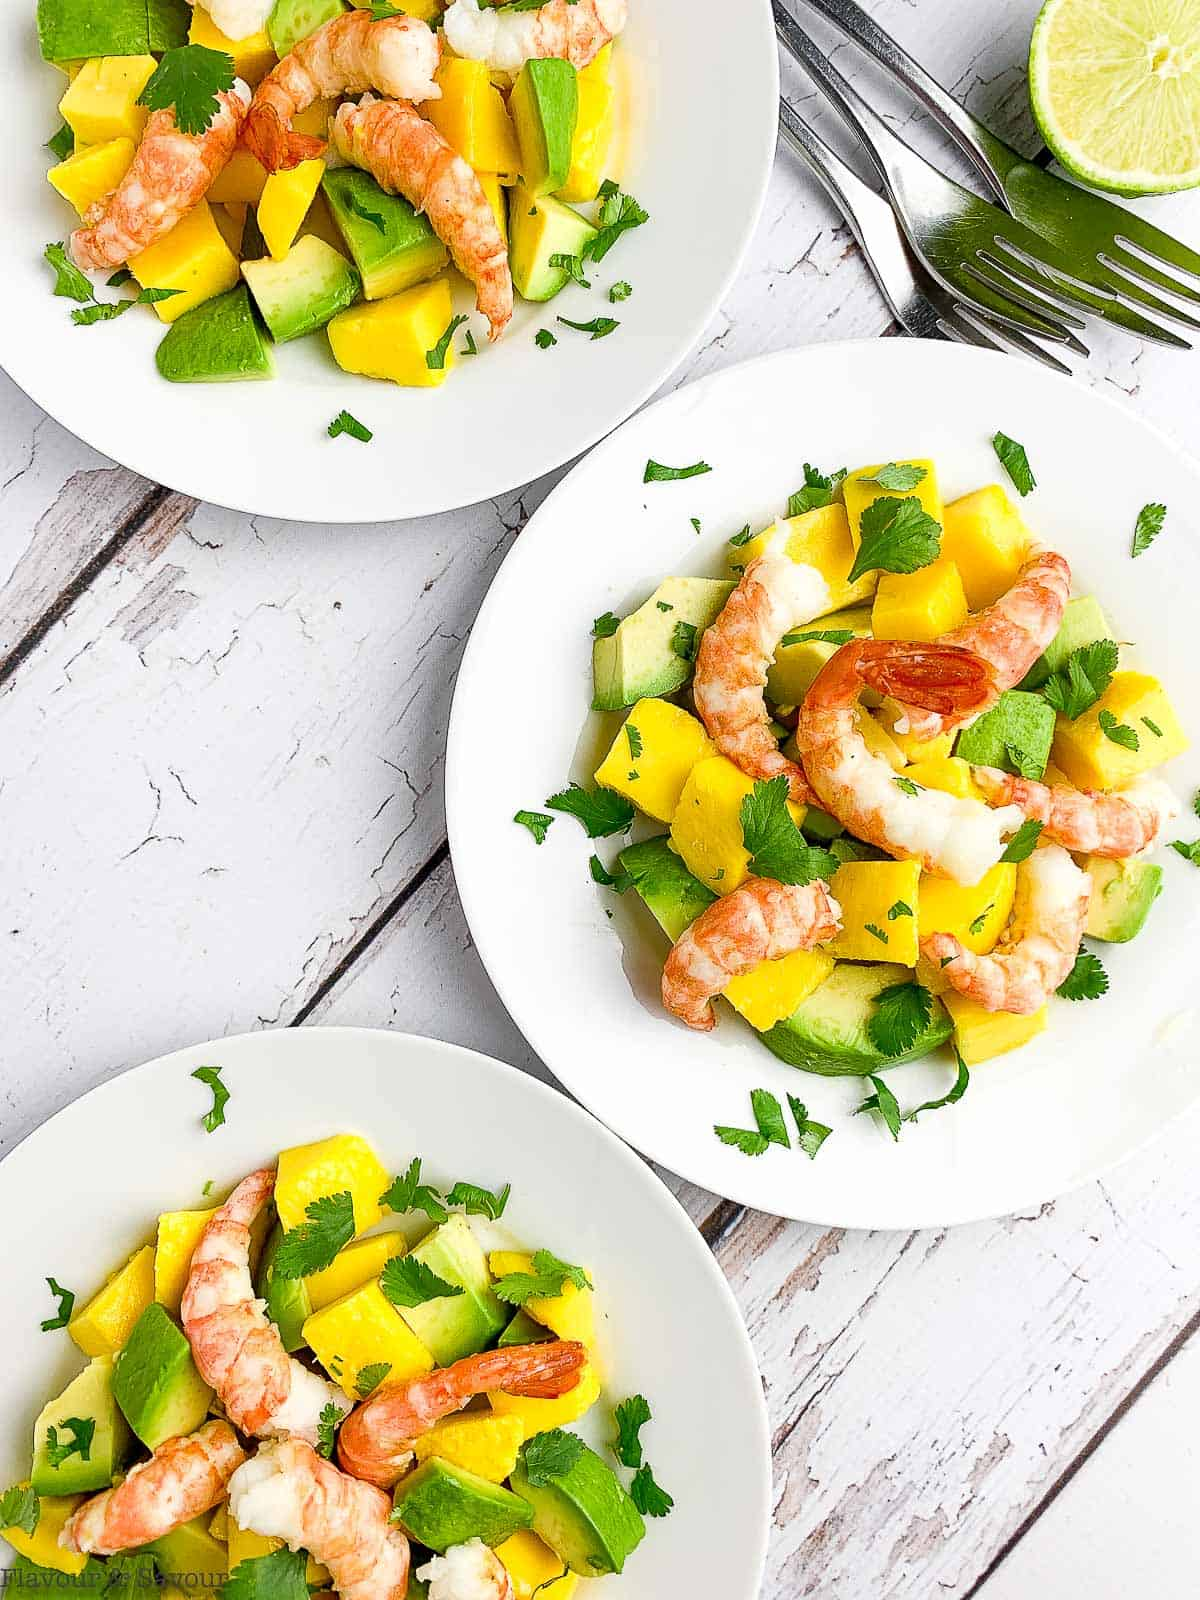 Three plates of prawn salad with mangoes and avocados.